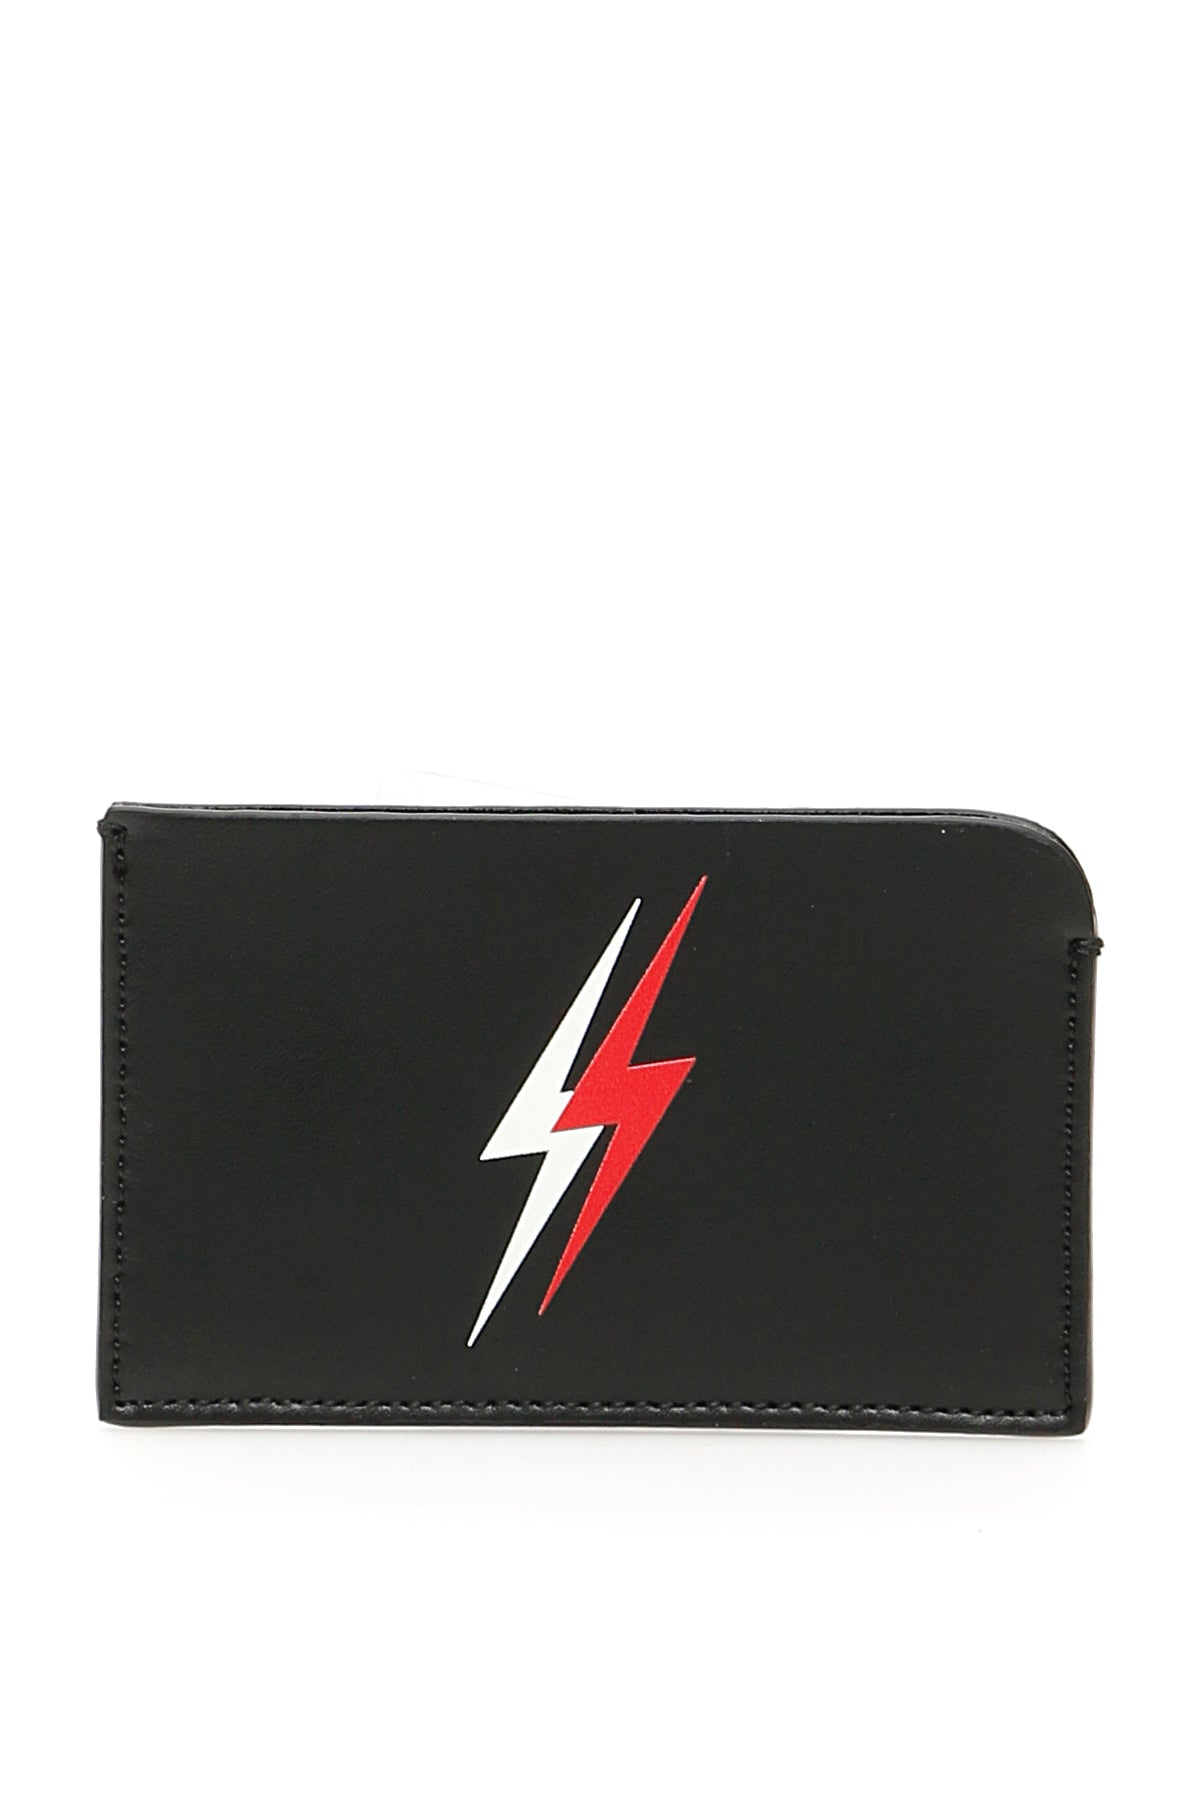 Neil Barrett Accessories NEIL BARRETT THUNDERBOLT PRINT CARDHOLDER